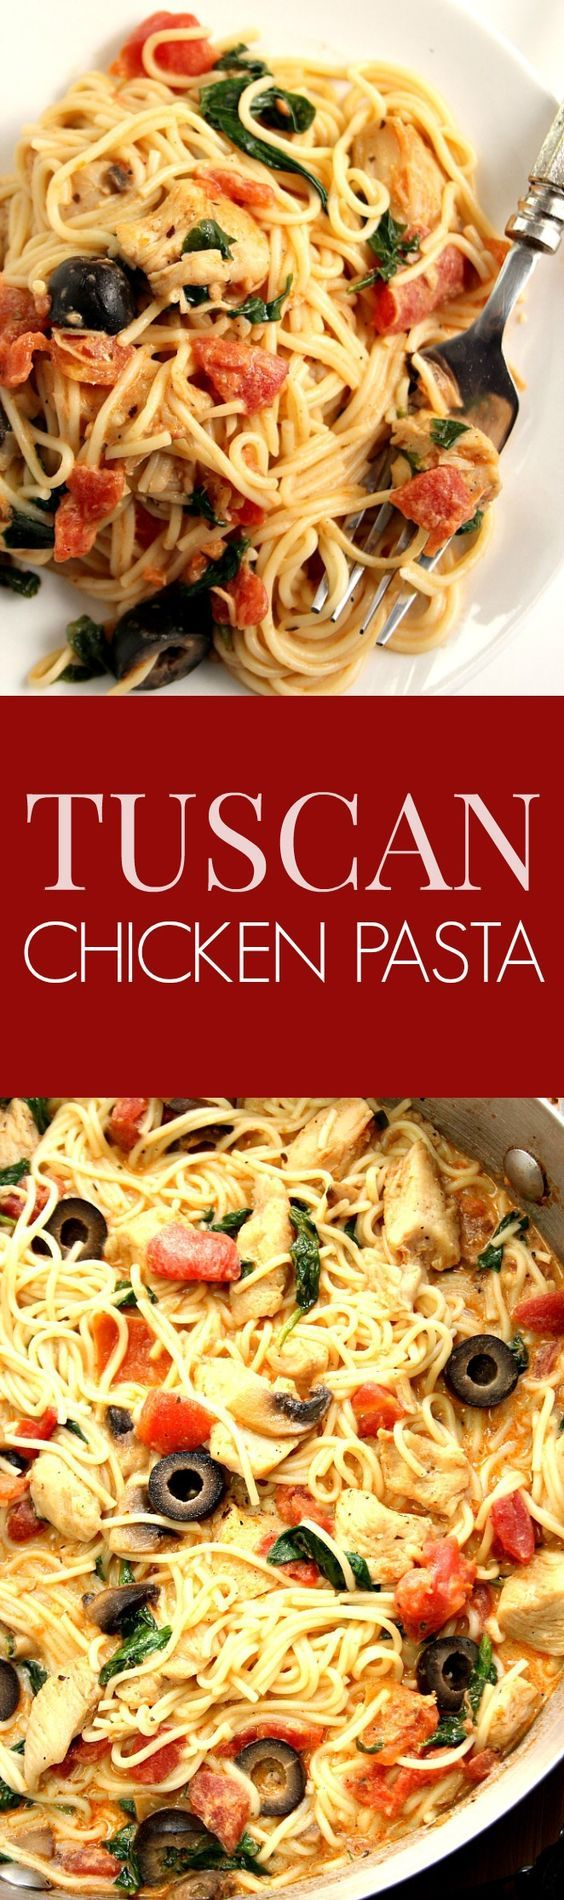 Tuscan Chicken Pasta Recipe - saucy pasta dish with chicken, spinach, tomatoes…